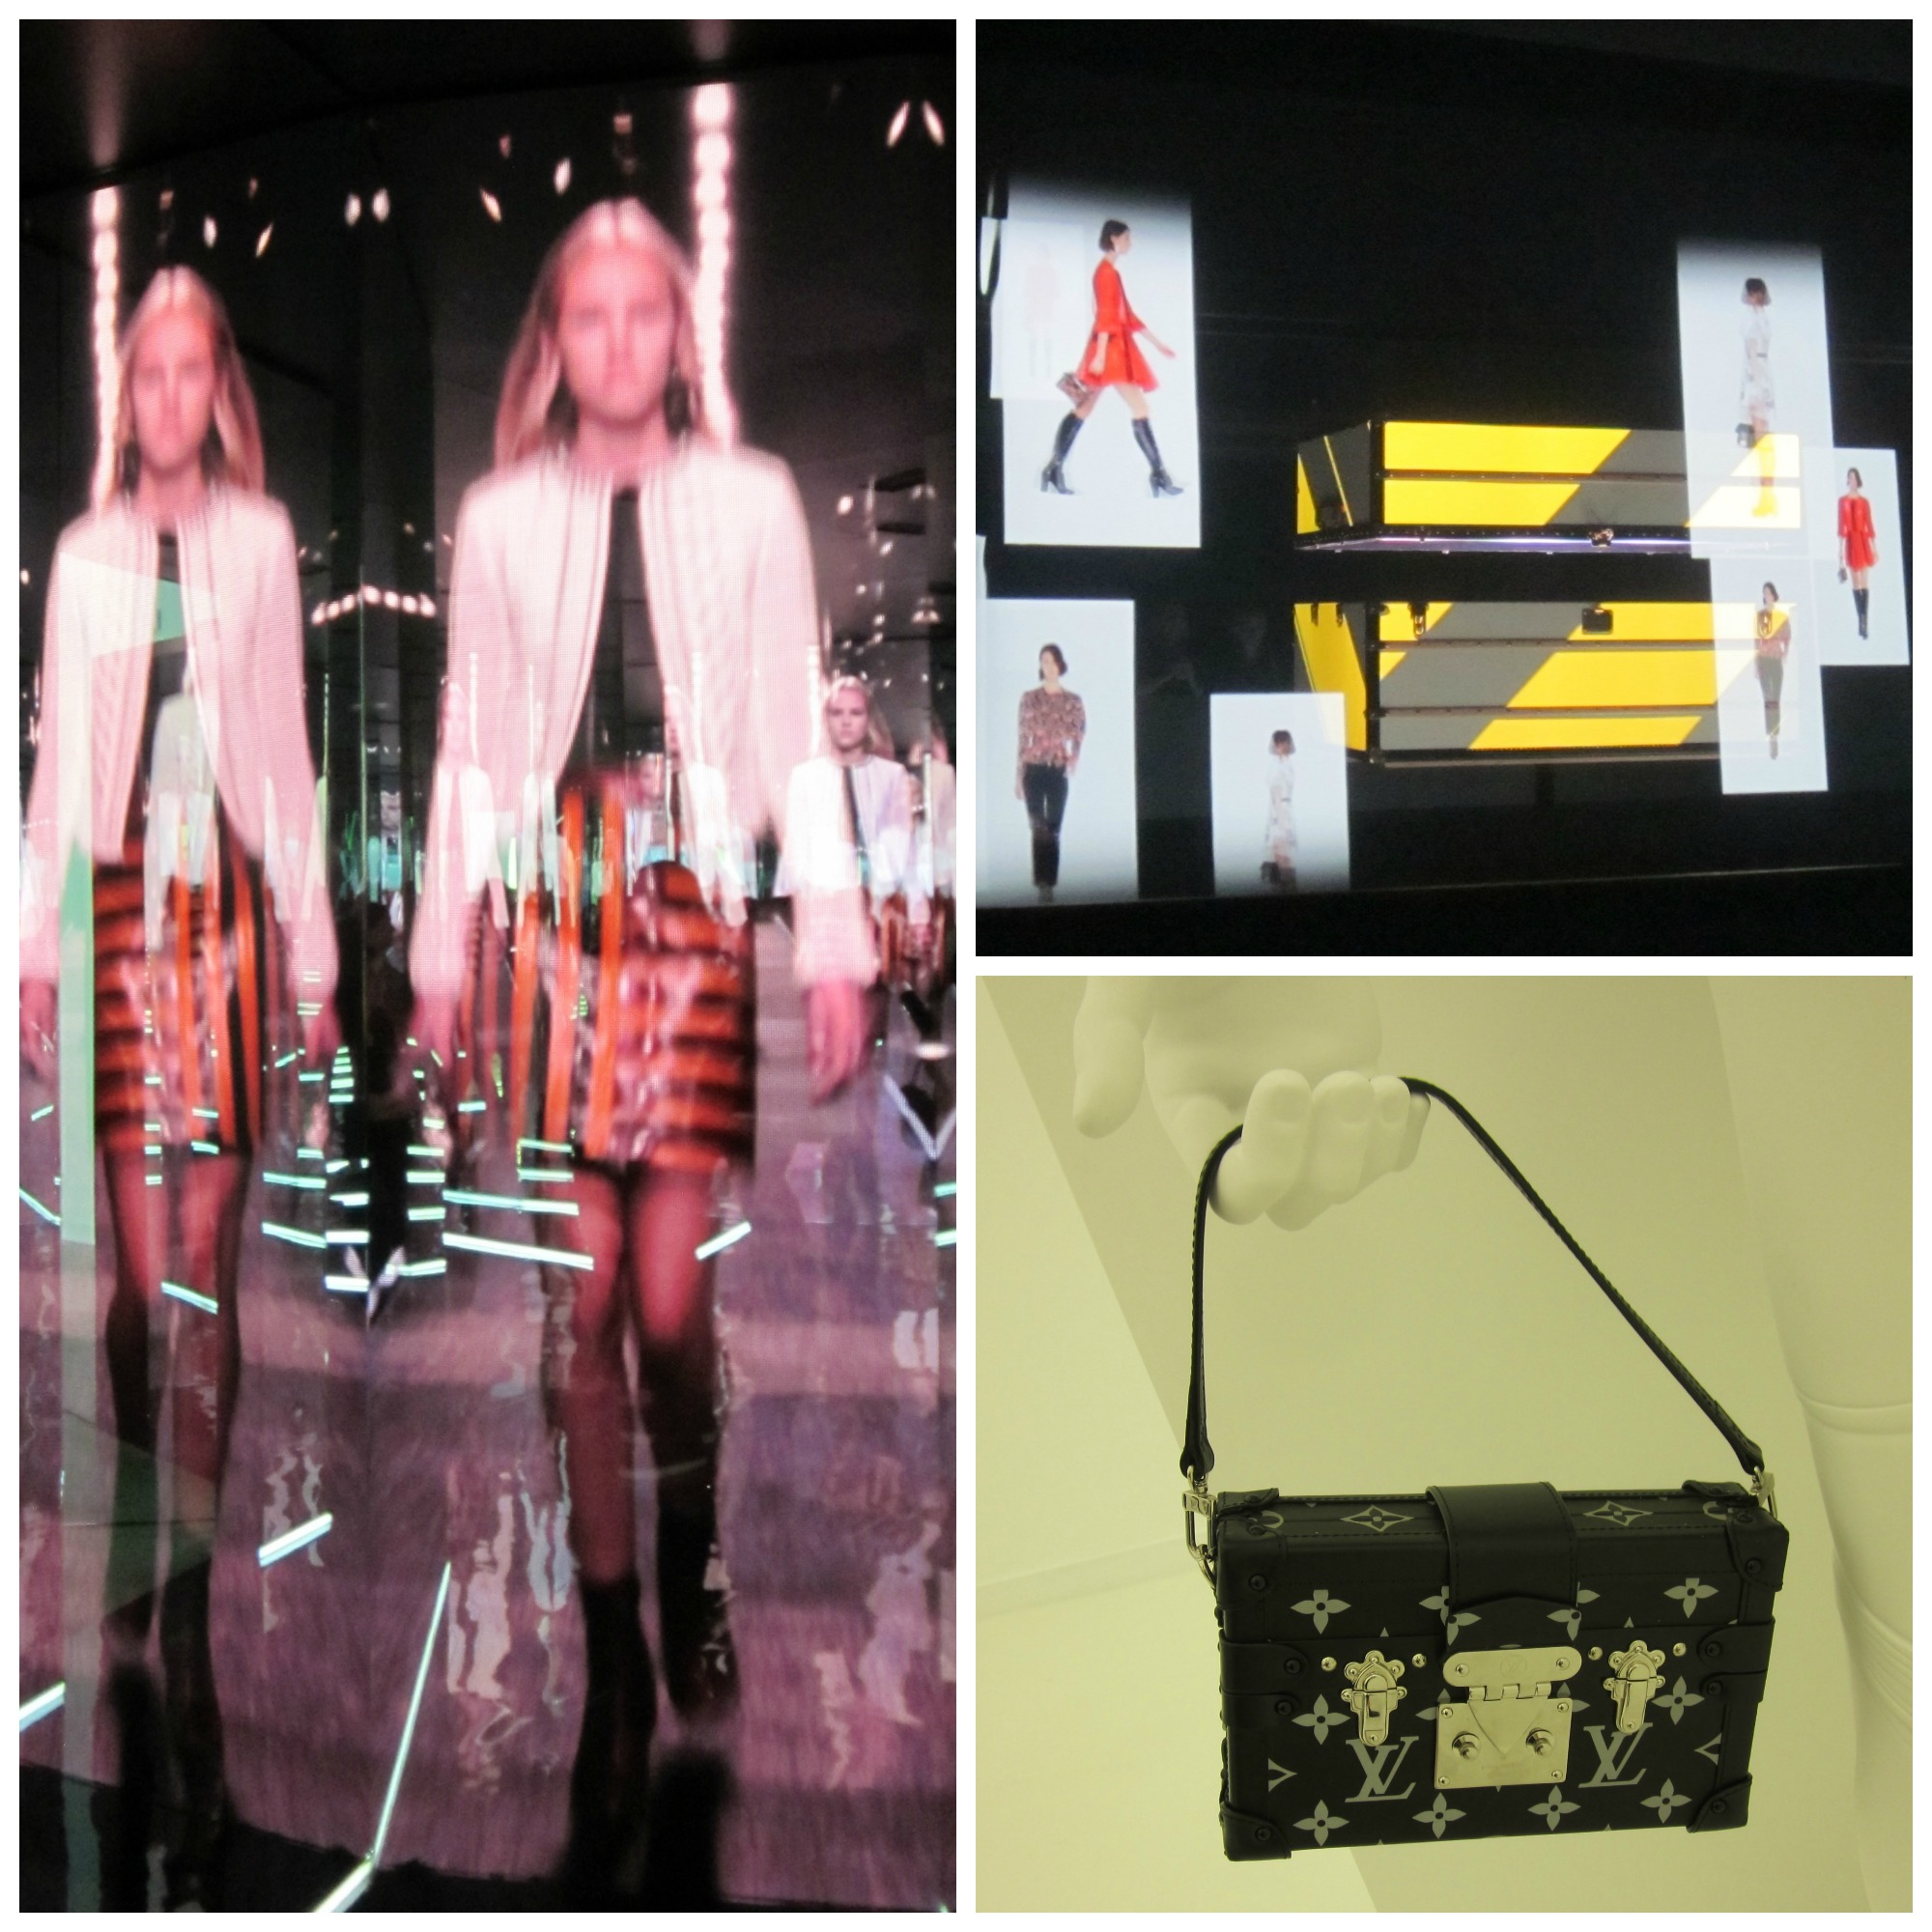 Louis Vuitton Los Angeles Series 2 Exhibit